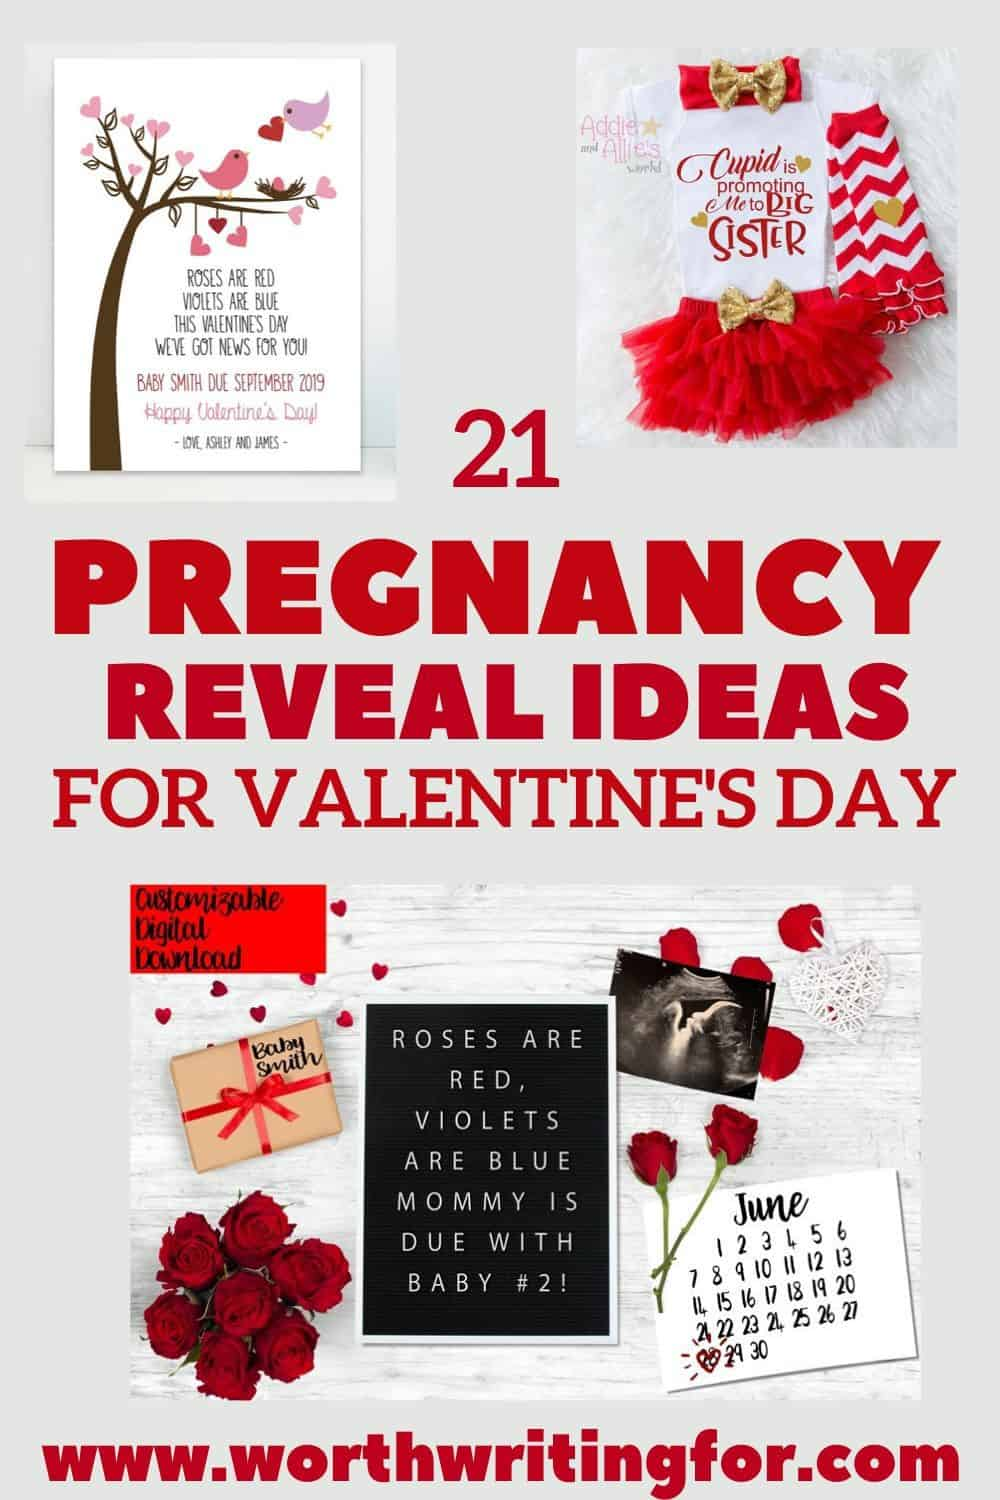 Valentine's Day pregnancy post for social media